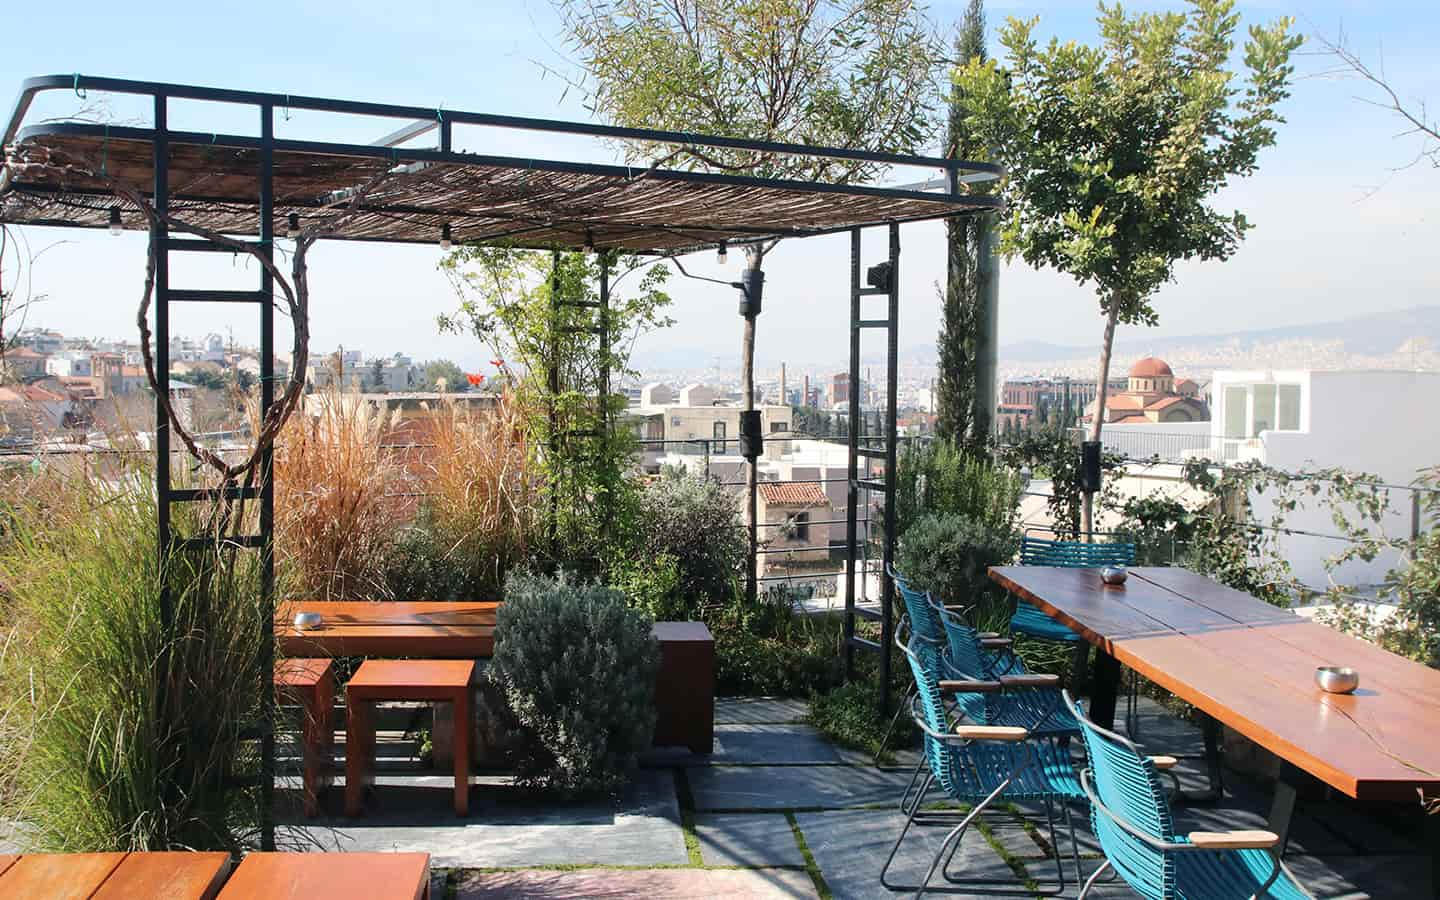 The Foundry Suites, an eco-friendly hotel in Athens